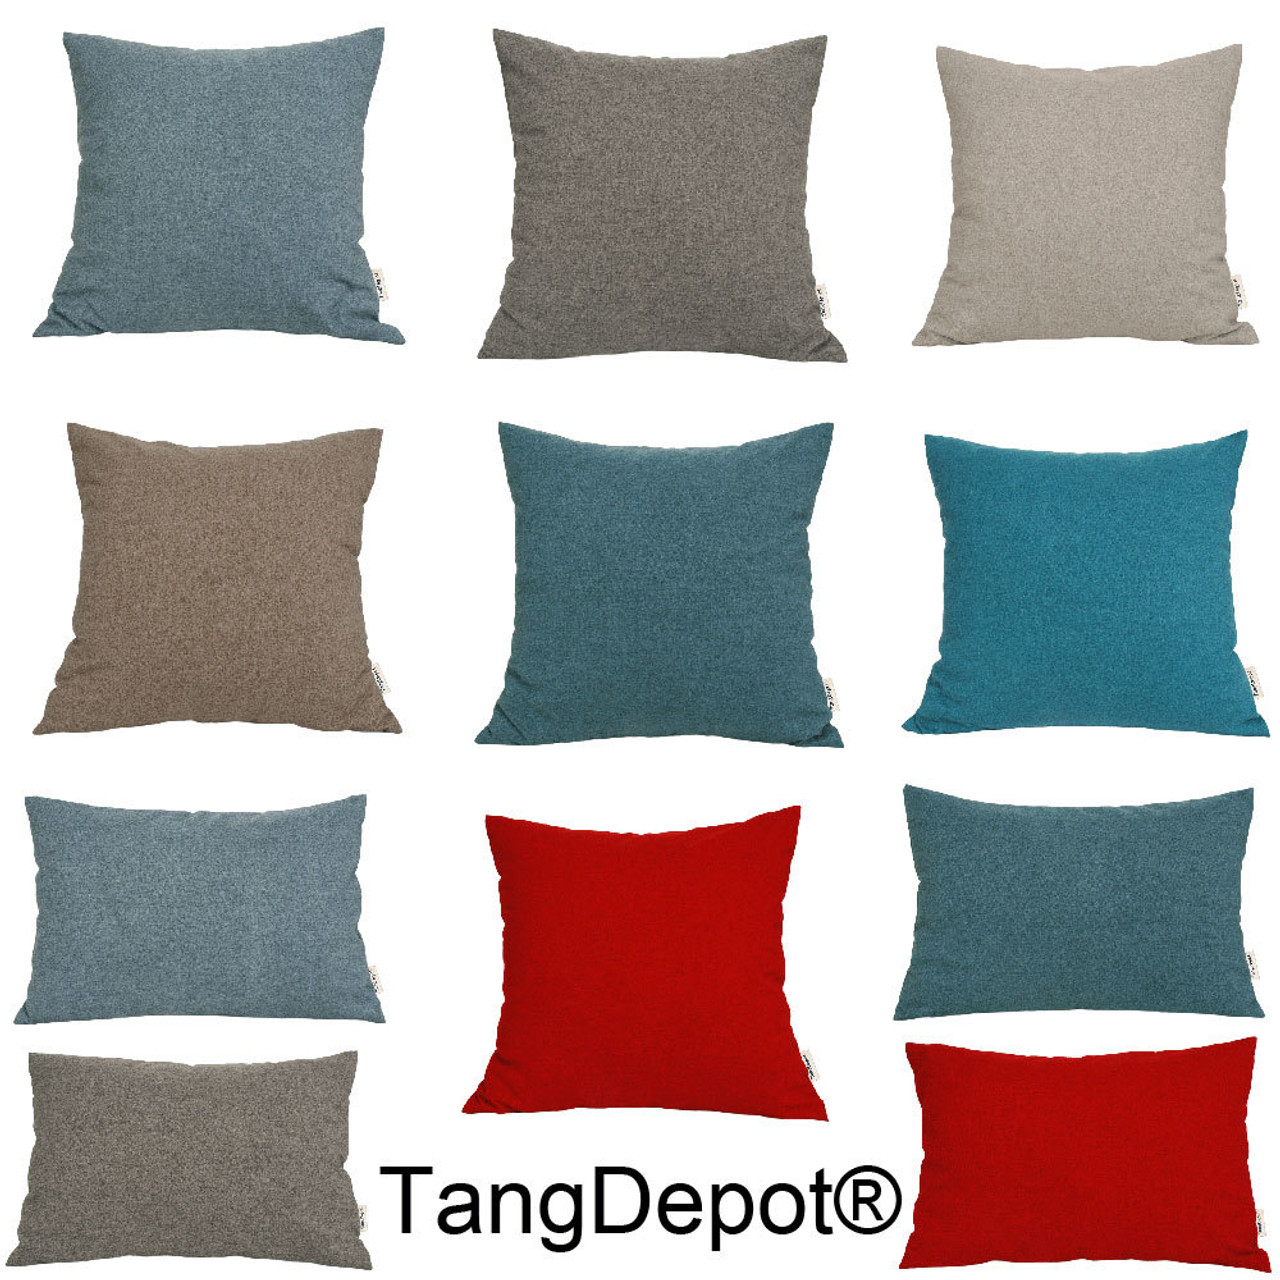 TangDepot Solid Wool-like Throw Pillow Cover/Euro Sham/Cushion Sham, Super Luxury Soft Pillow Cases - Handmade - Many Colors & Sizes Avaliable